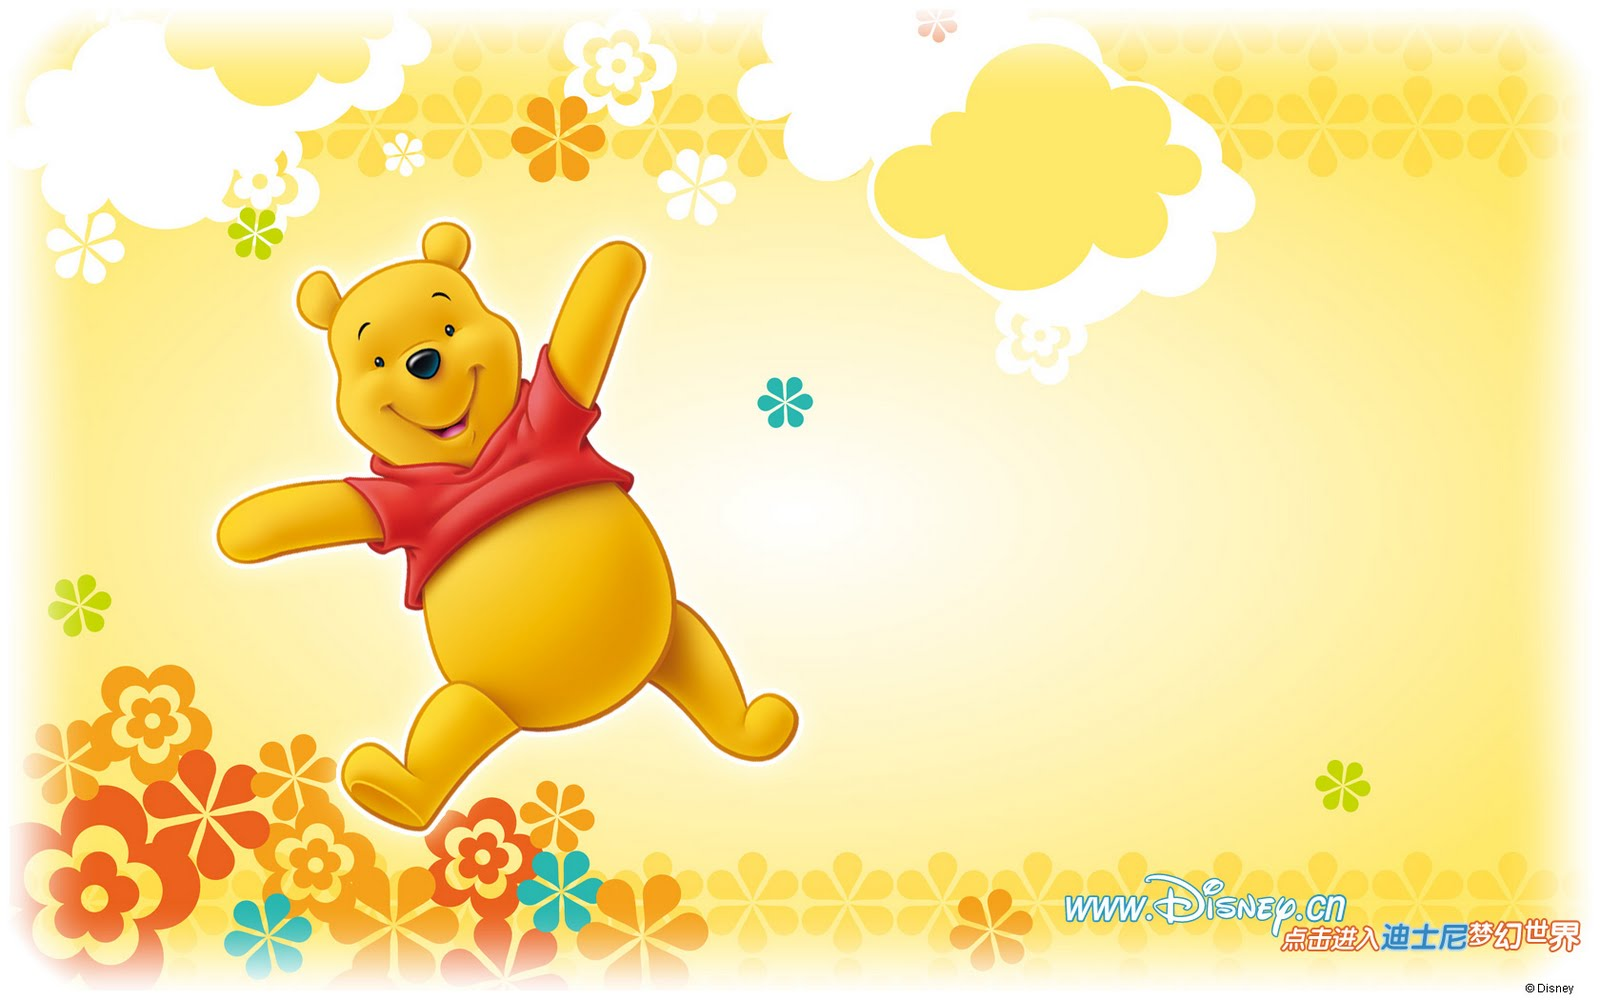 Winnie The Pooh Wallpapers HD yellow background